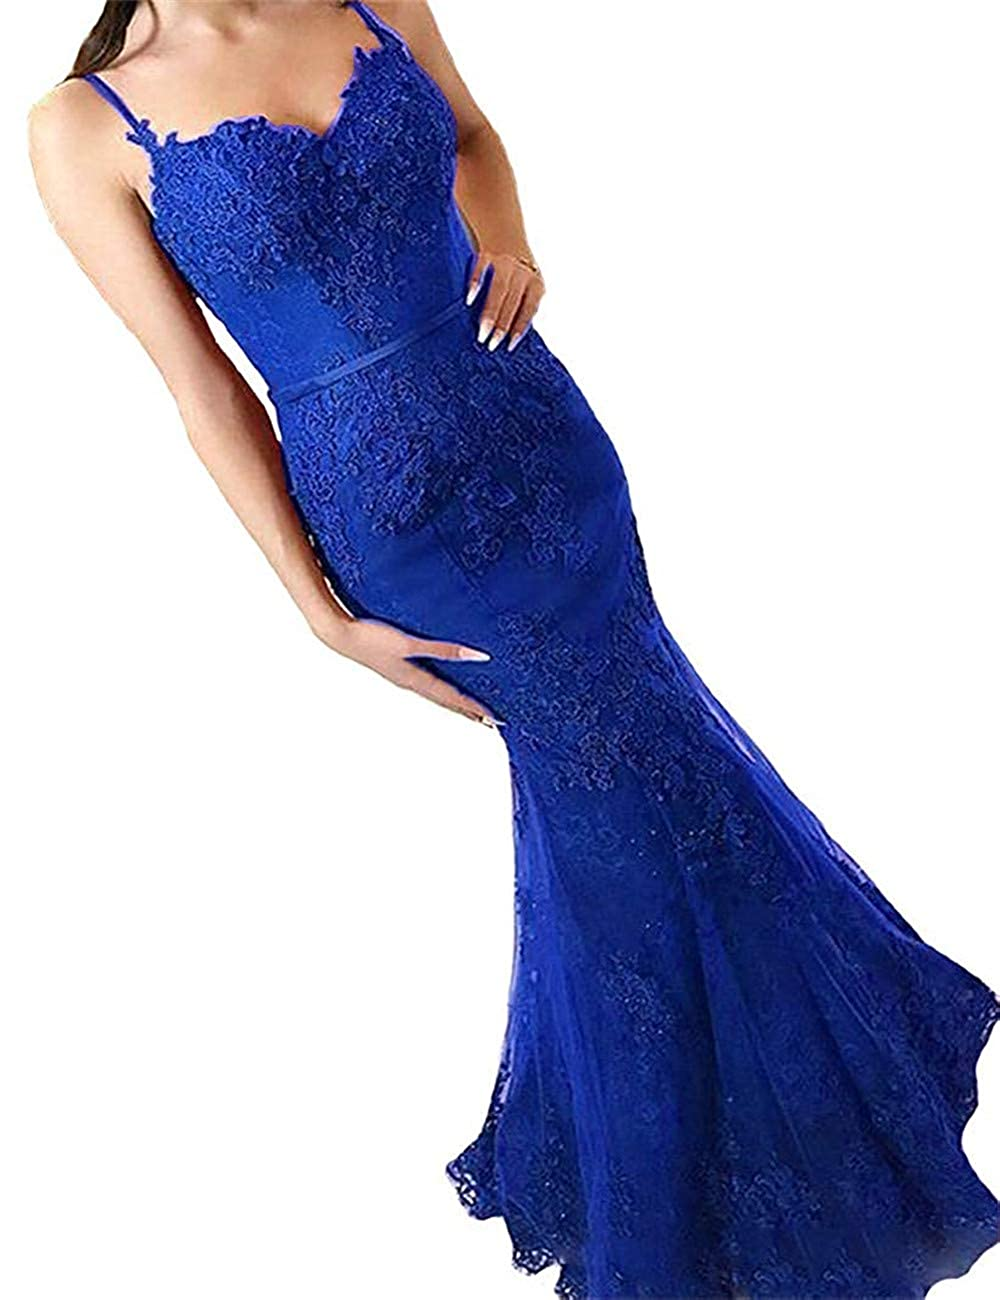 Royal bluee Sophie Women's Mermaid Full Lace Prom Dresses Spaghetti Straps Long Formal Evening Dress S164